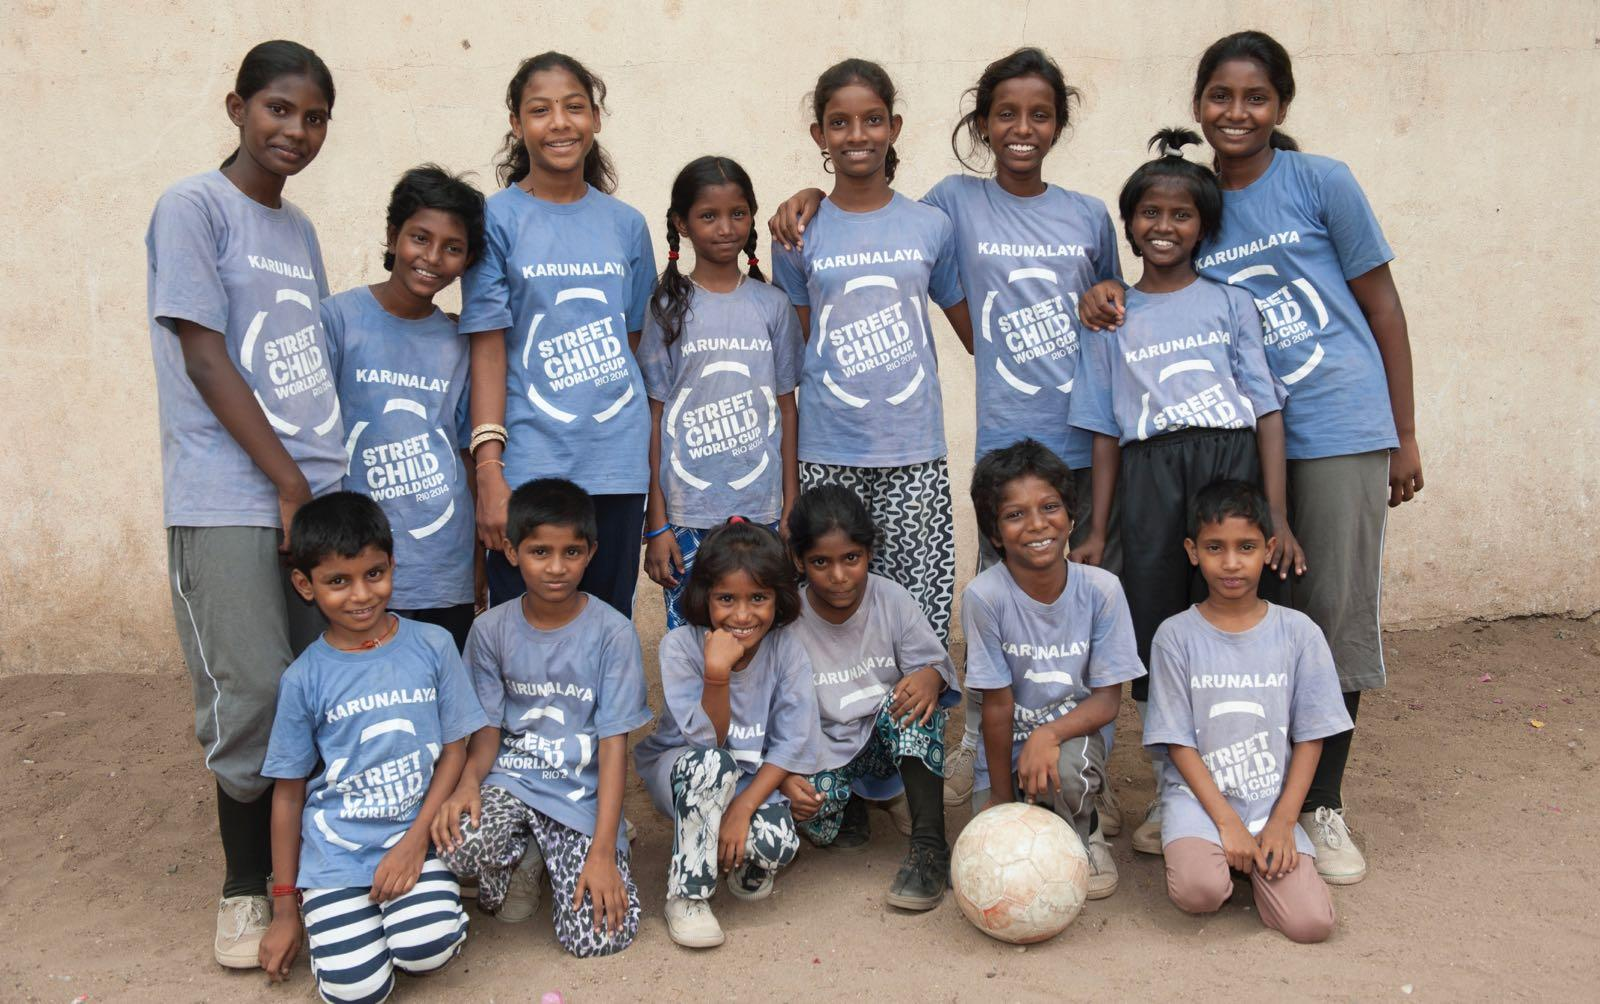 Team picture of girls playing soccer